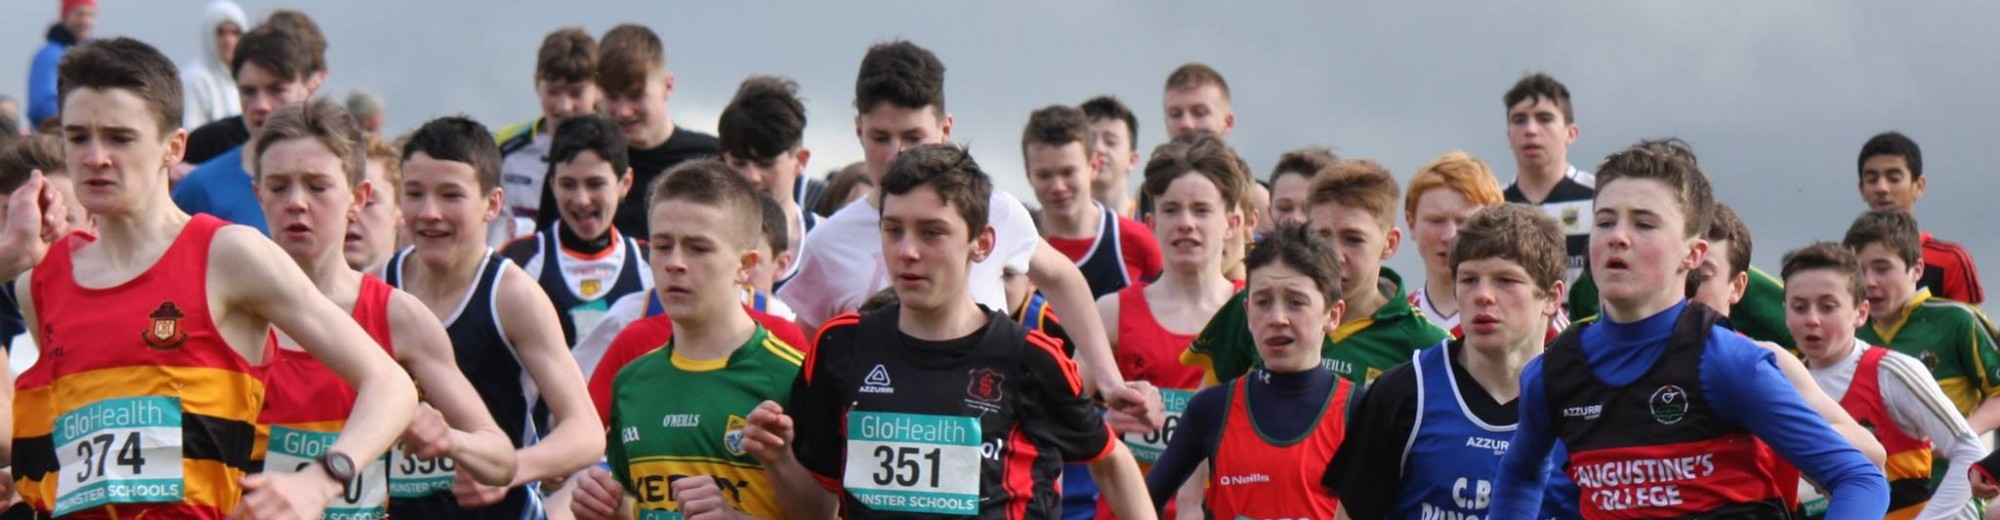 Munster Schools Athletics Association